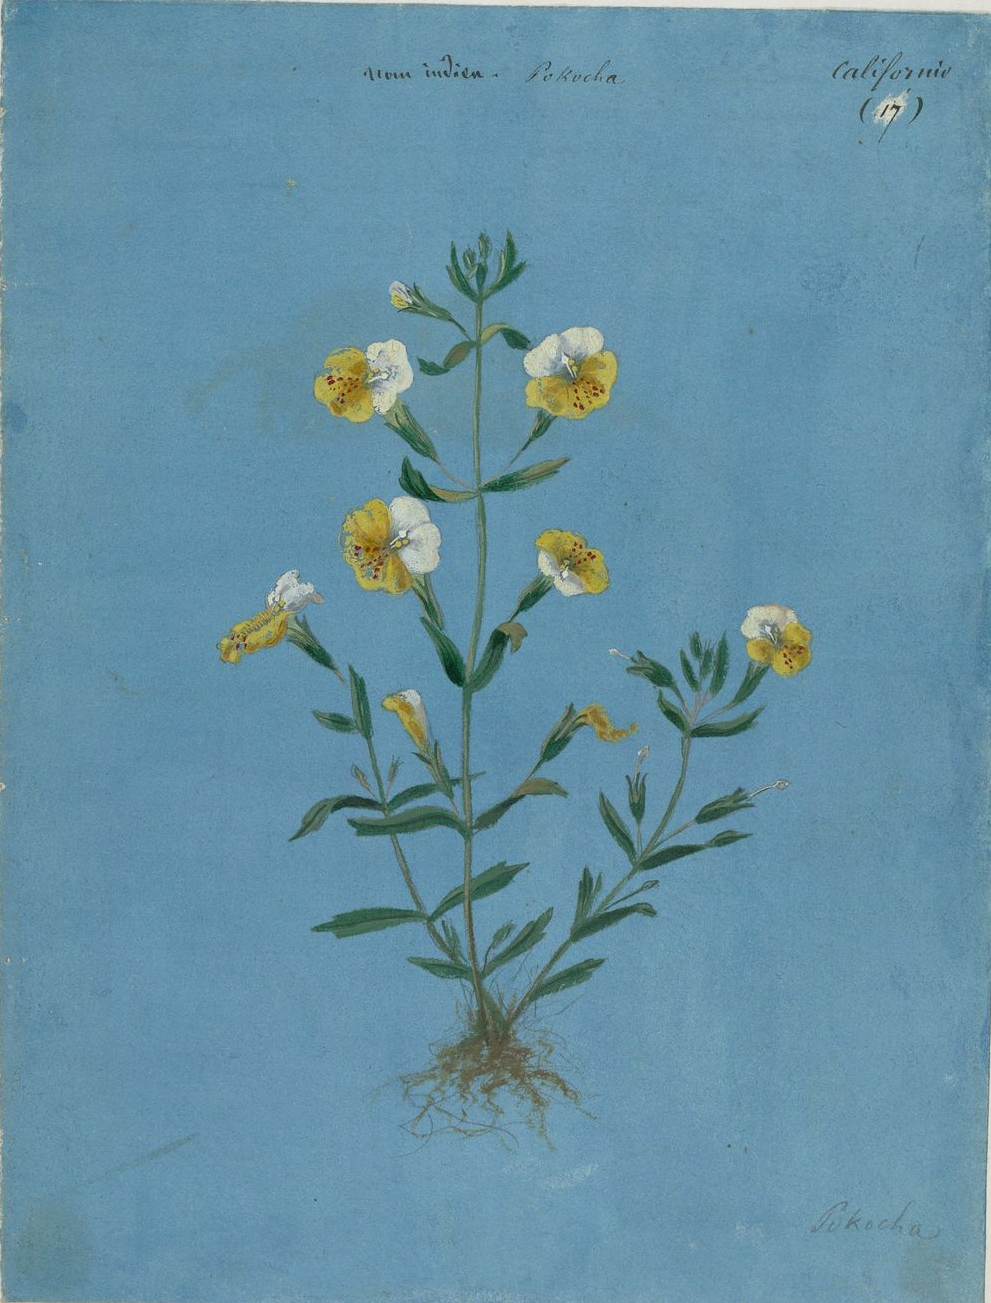 clifornia flowering plant, botanic illustration